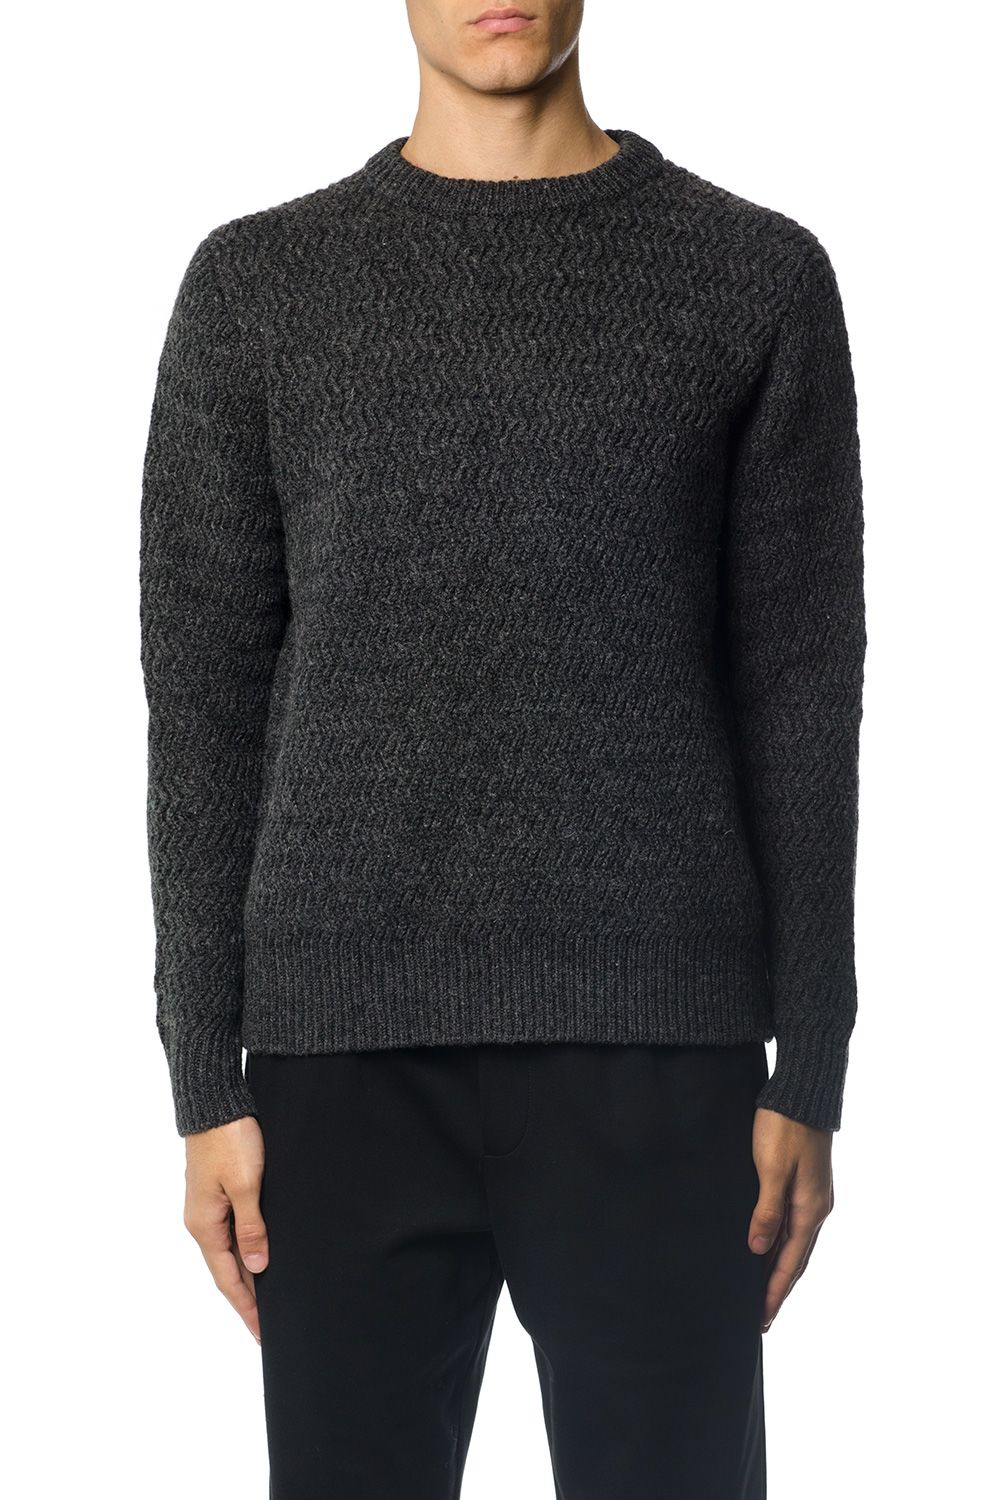 Acne Studios Melange Grey Wool Jumper